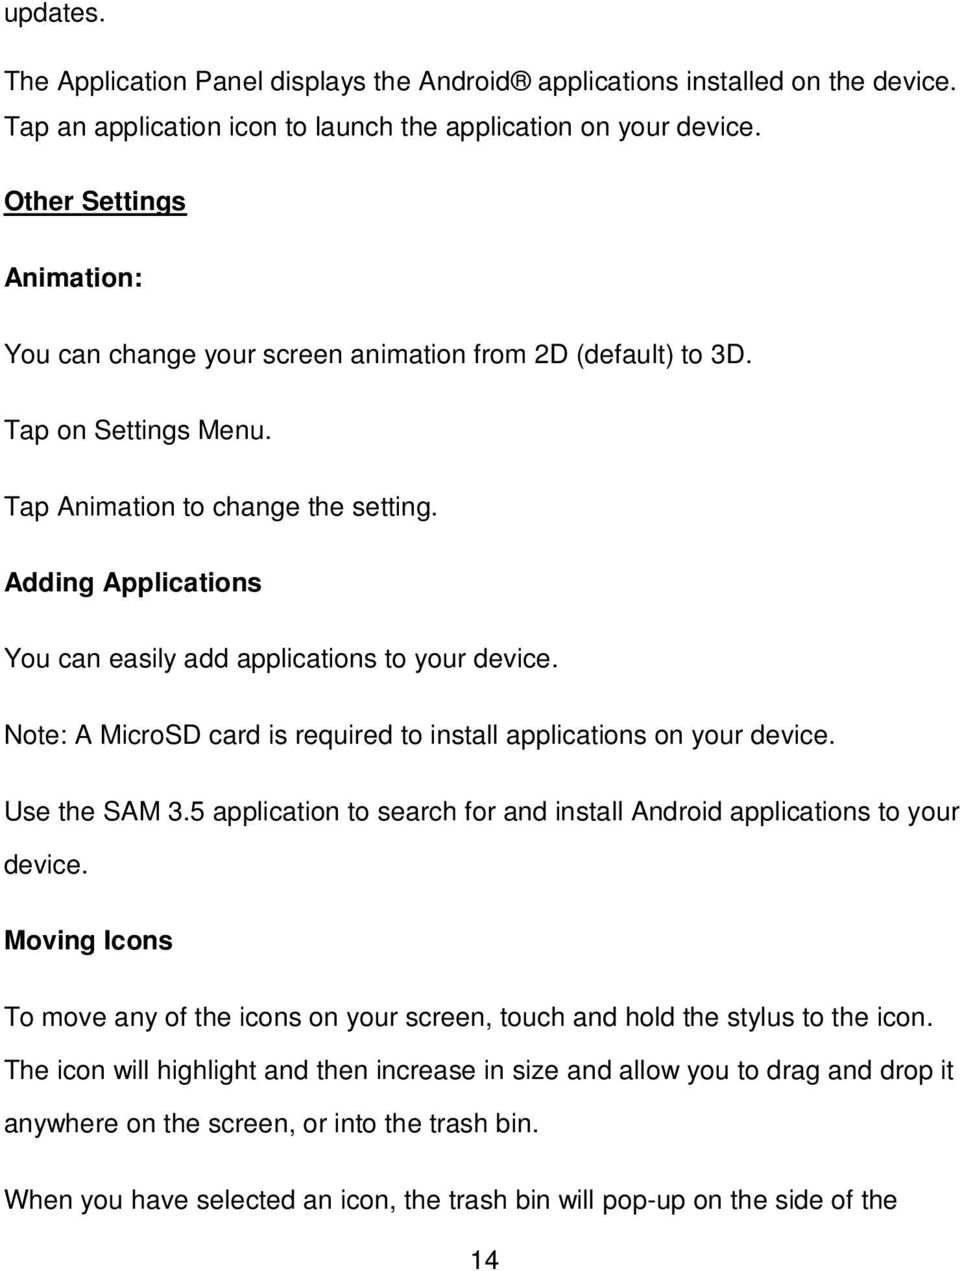 Adding Applications You can easily add applications to your device. Note: A MicroSD card is required to install applications on your device. Use the SAM 3.